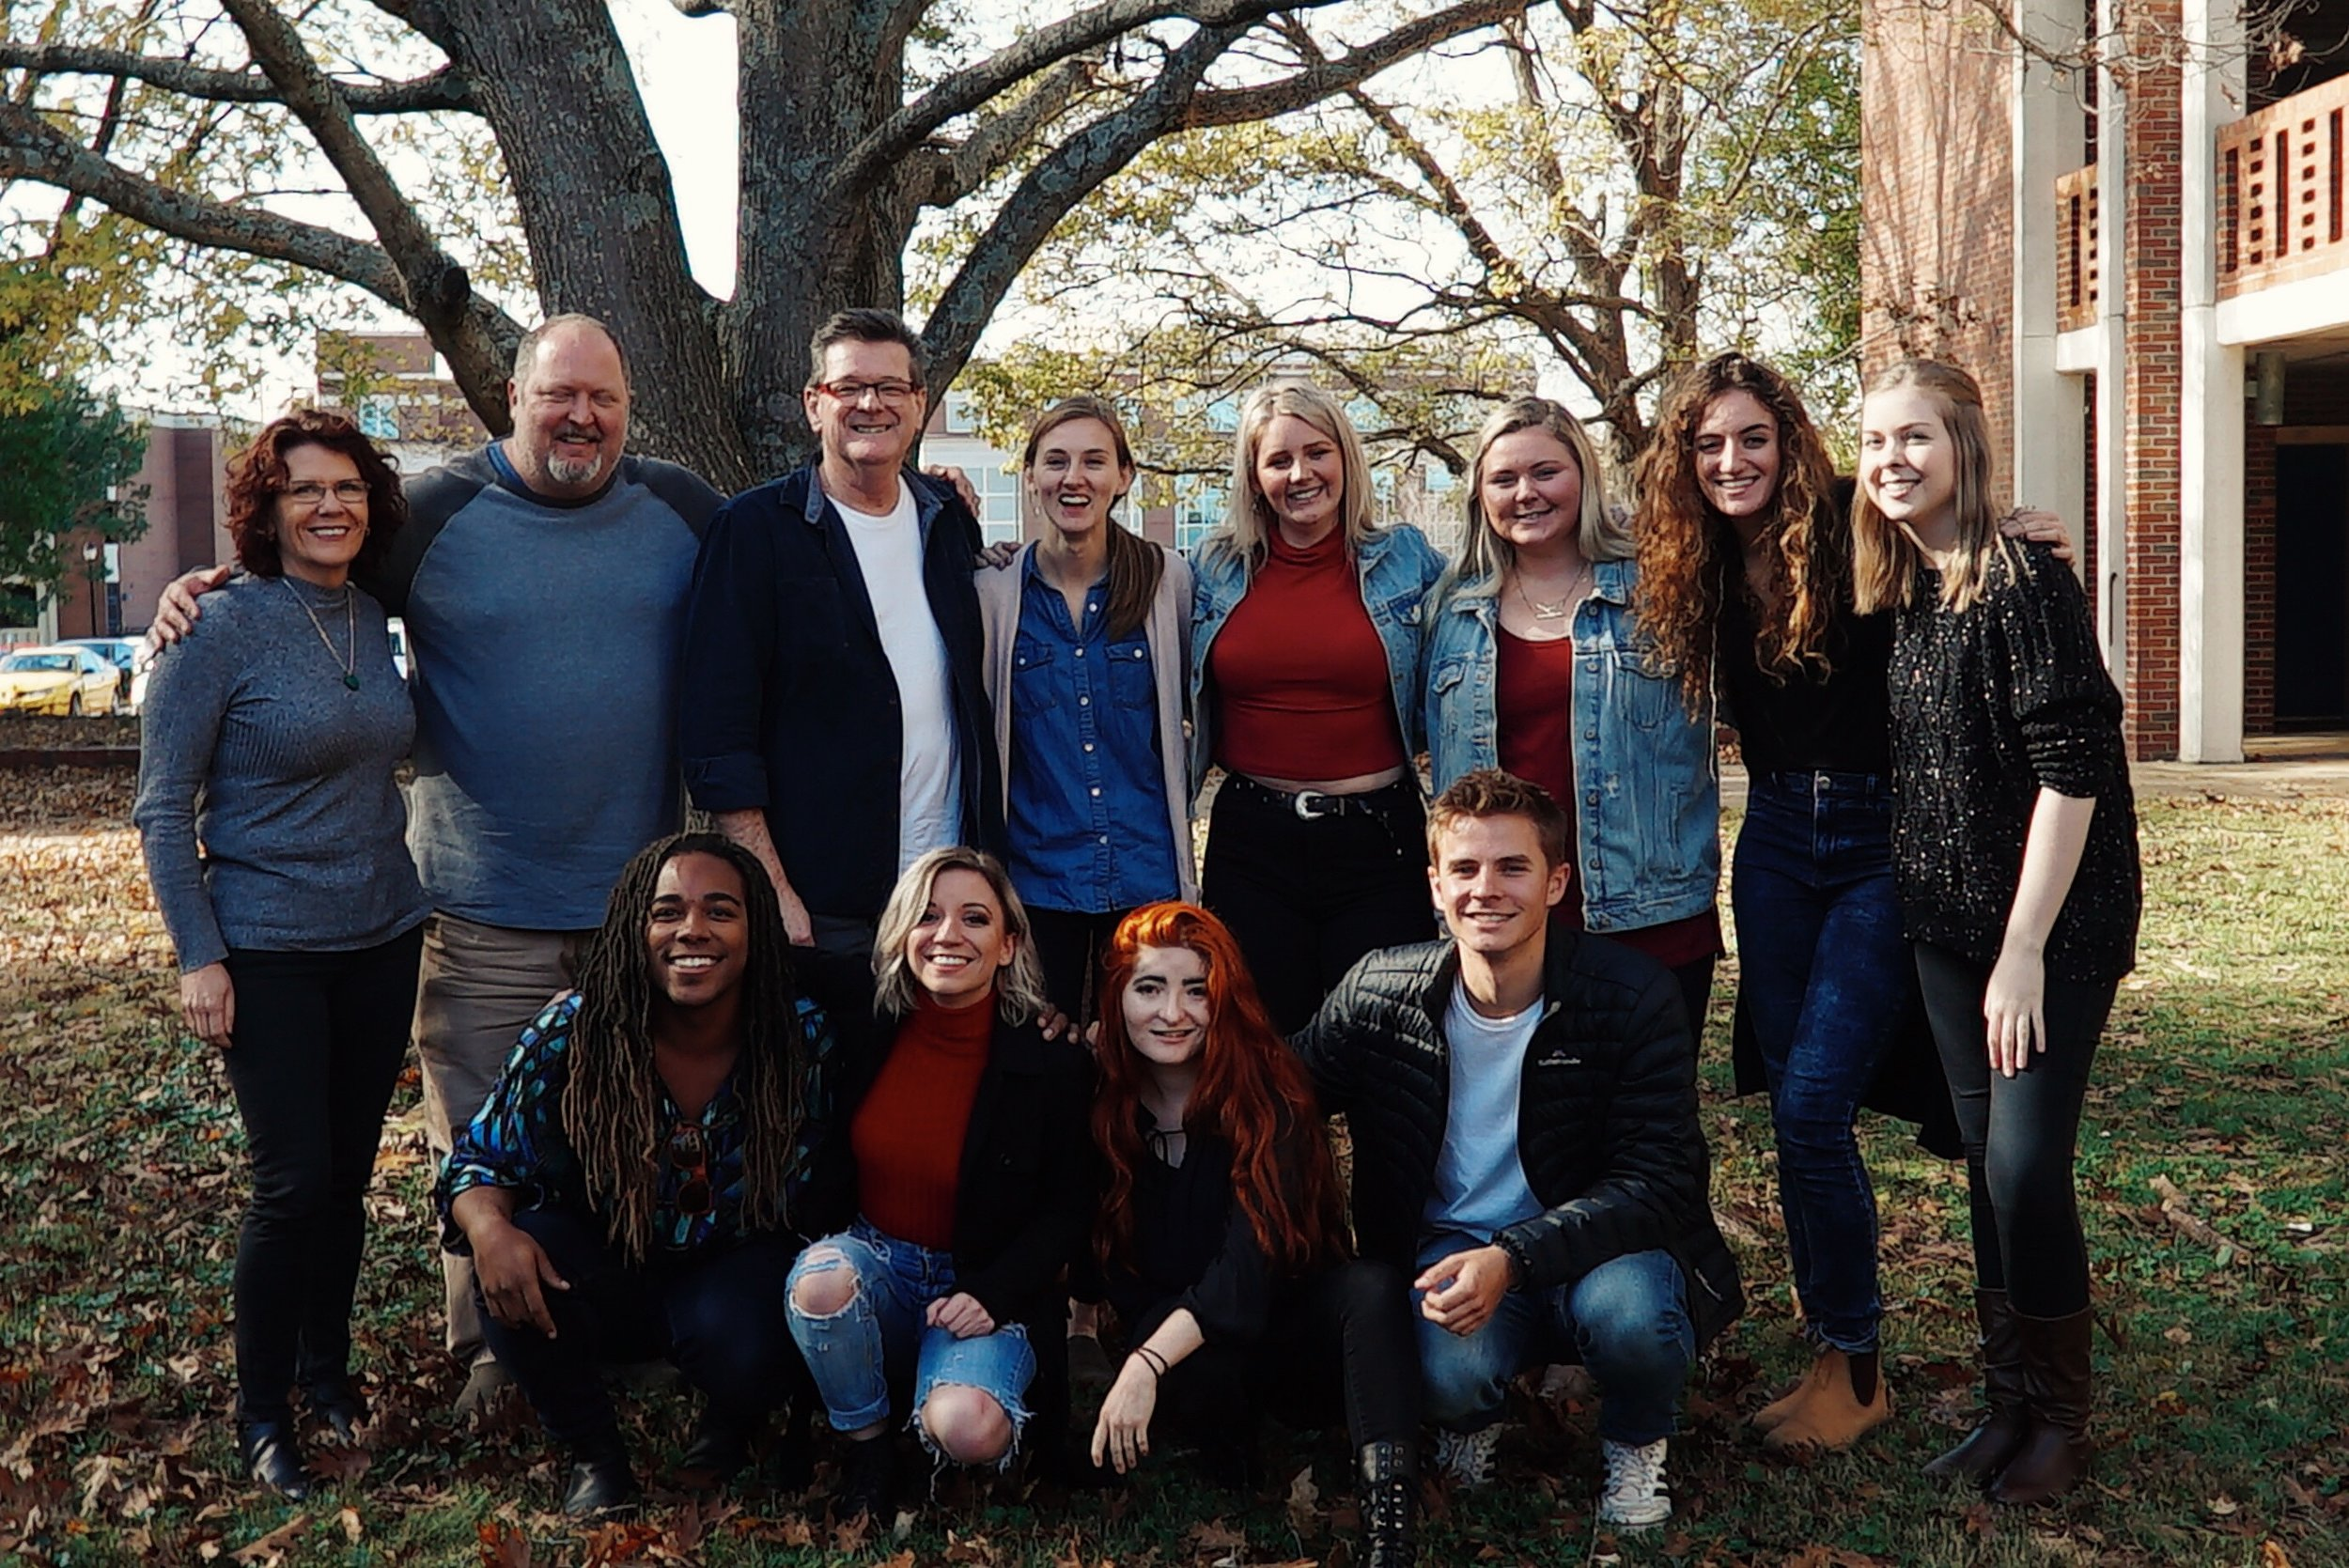 Group photo with Middle Tennessee State University Songwriting students